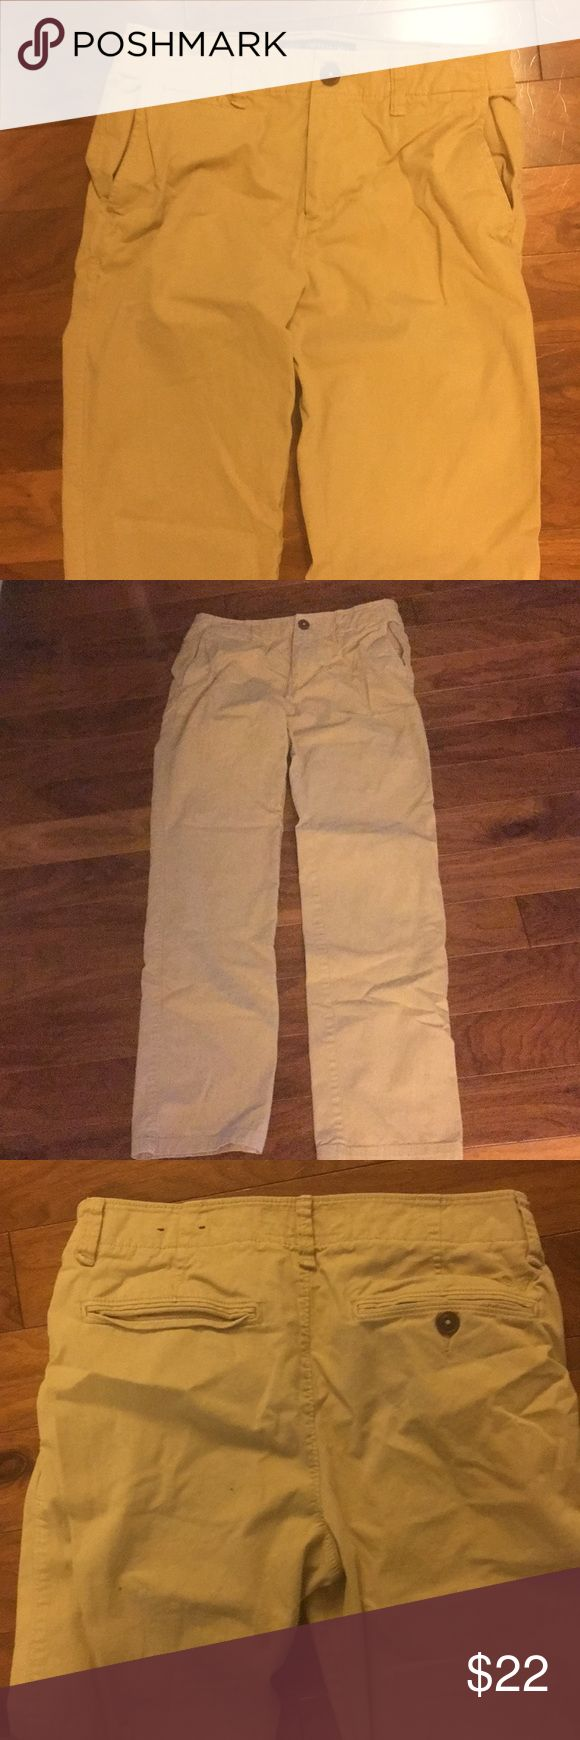 American Eagle Outfitters skinny khakis 29x32 khaki pants. 98% cotton. Soft. In great condition. American Eagle Outfitters Pants Chinos & Khakis